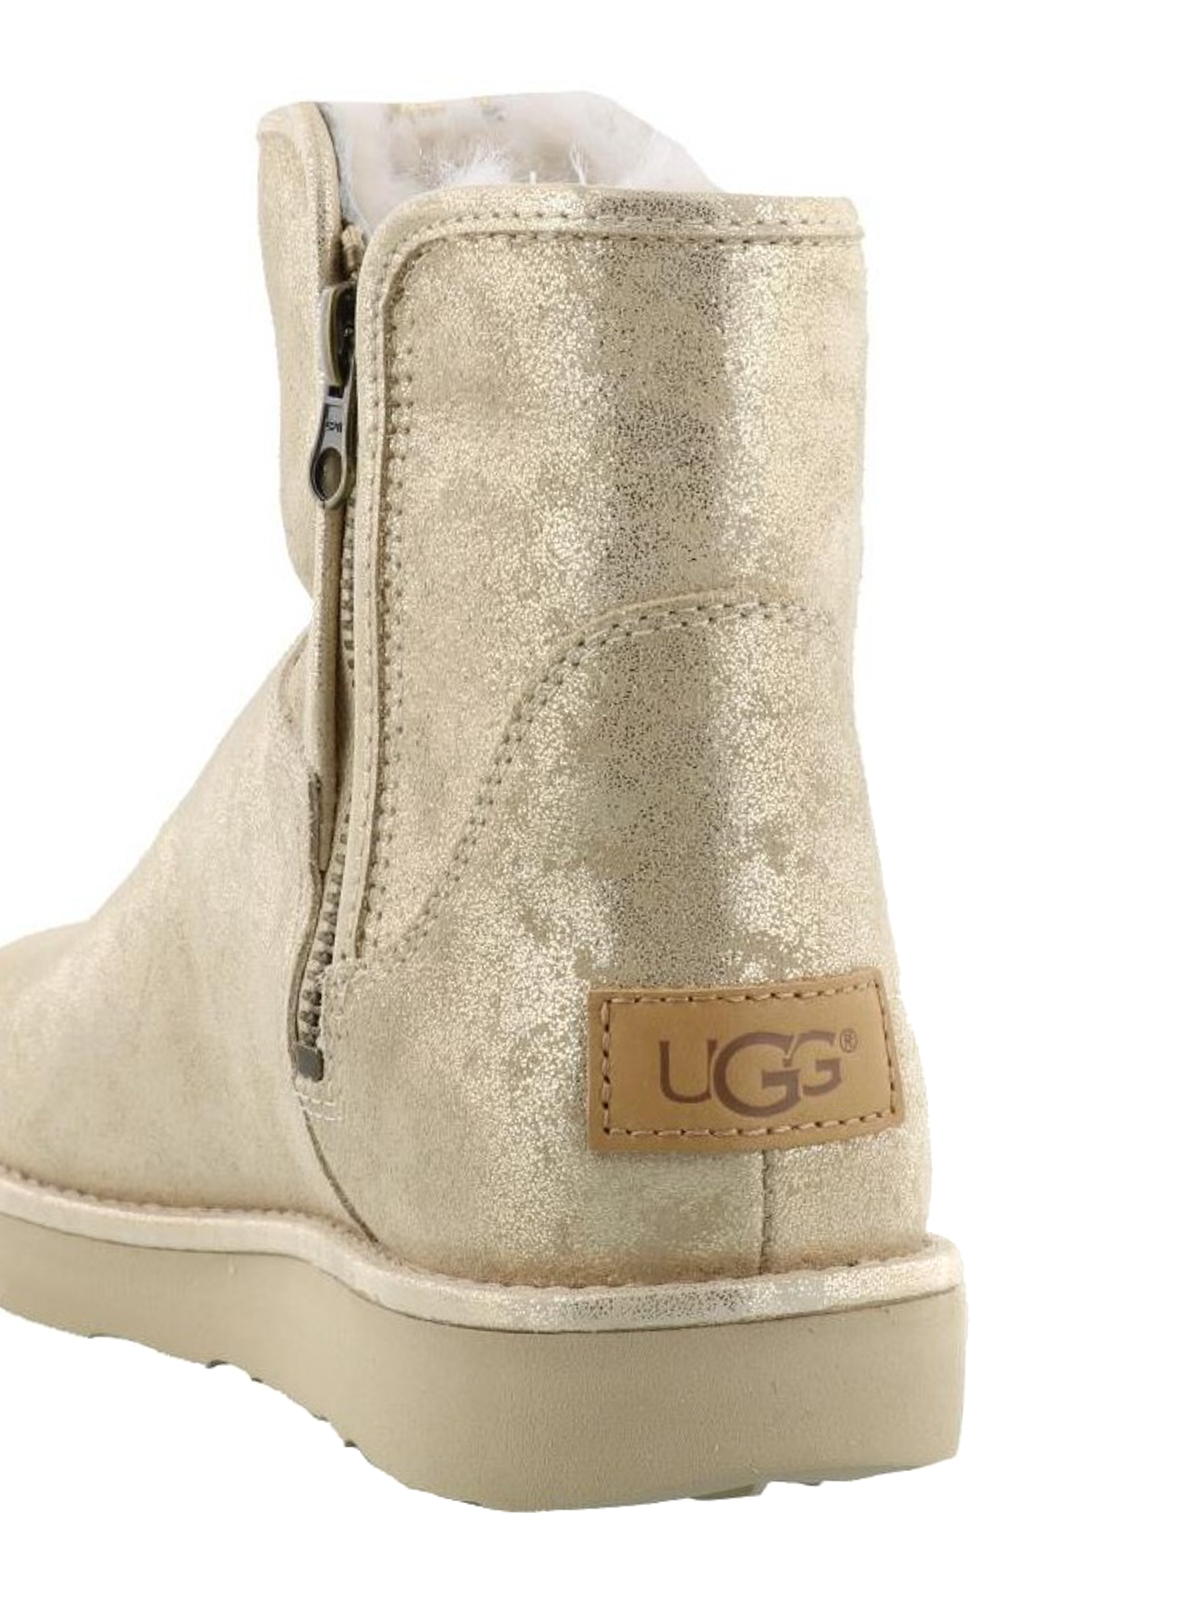 3efb44a2e3b Ugg - Abree Mini Stardust gold booties - ankle boots - 1094675 GOLD